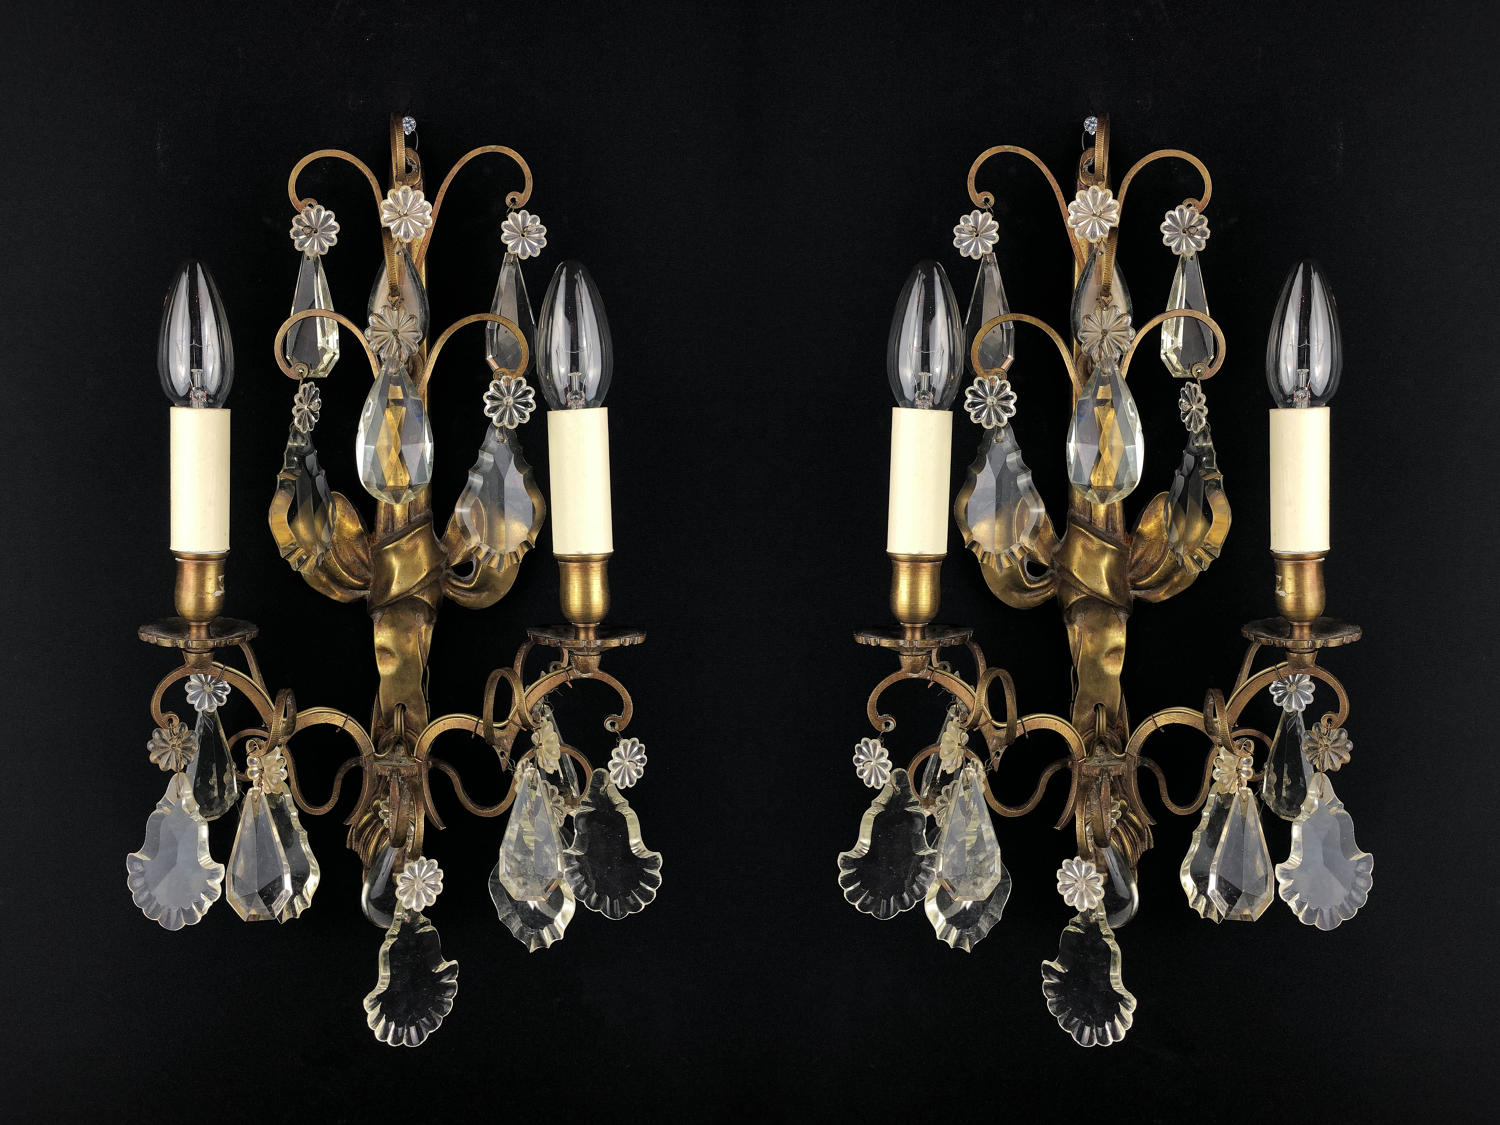 A pair of Louis XVI style wall lights